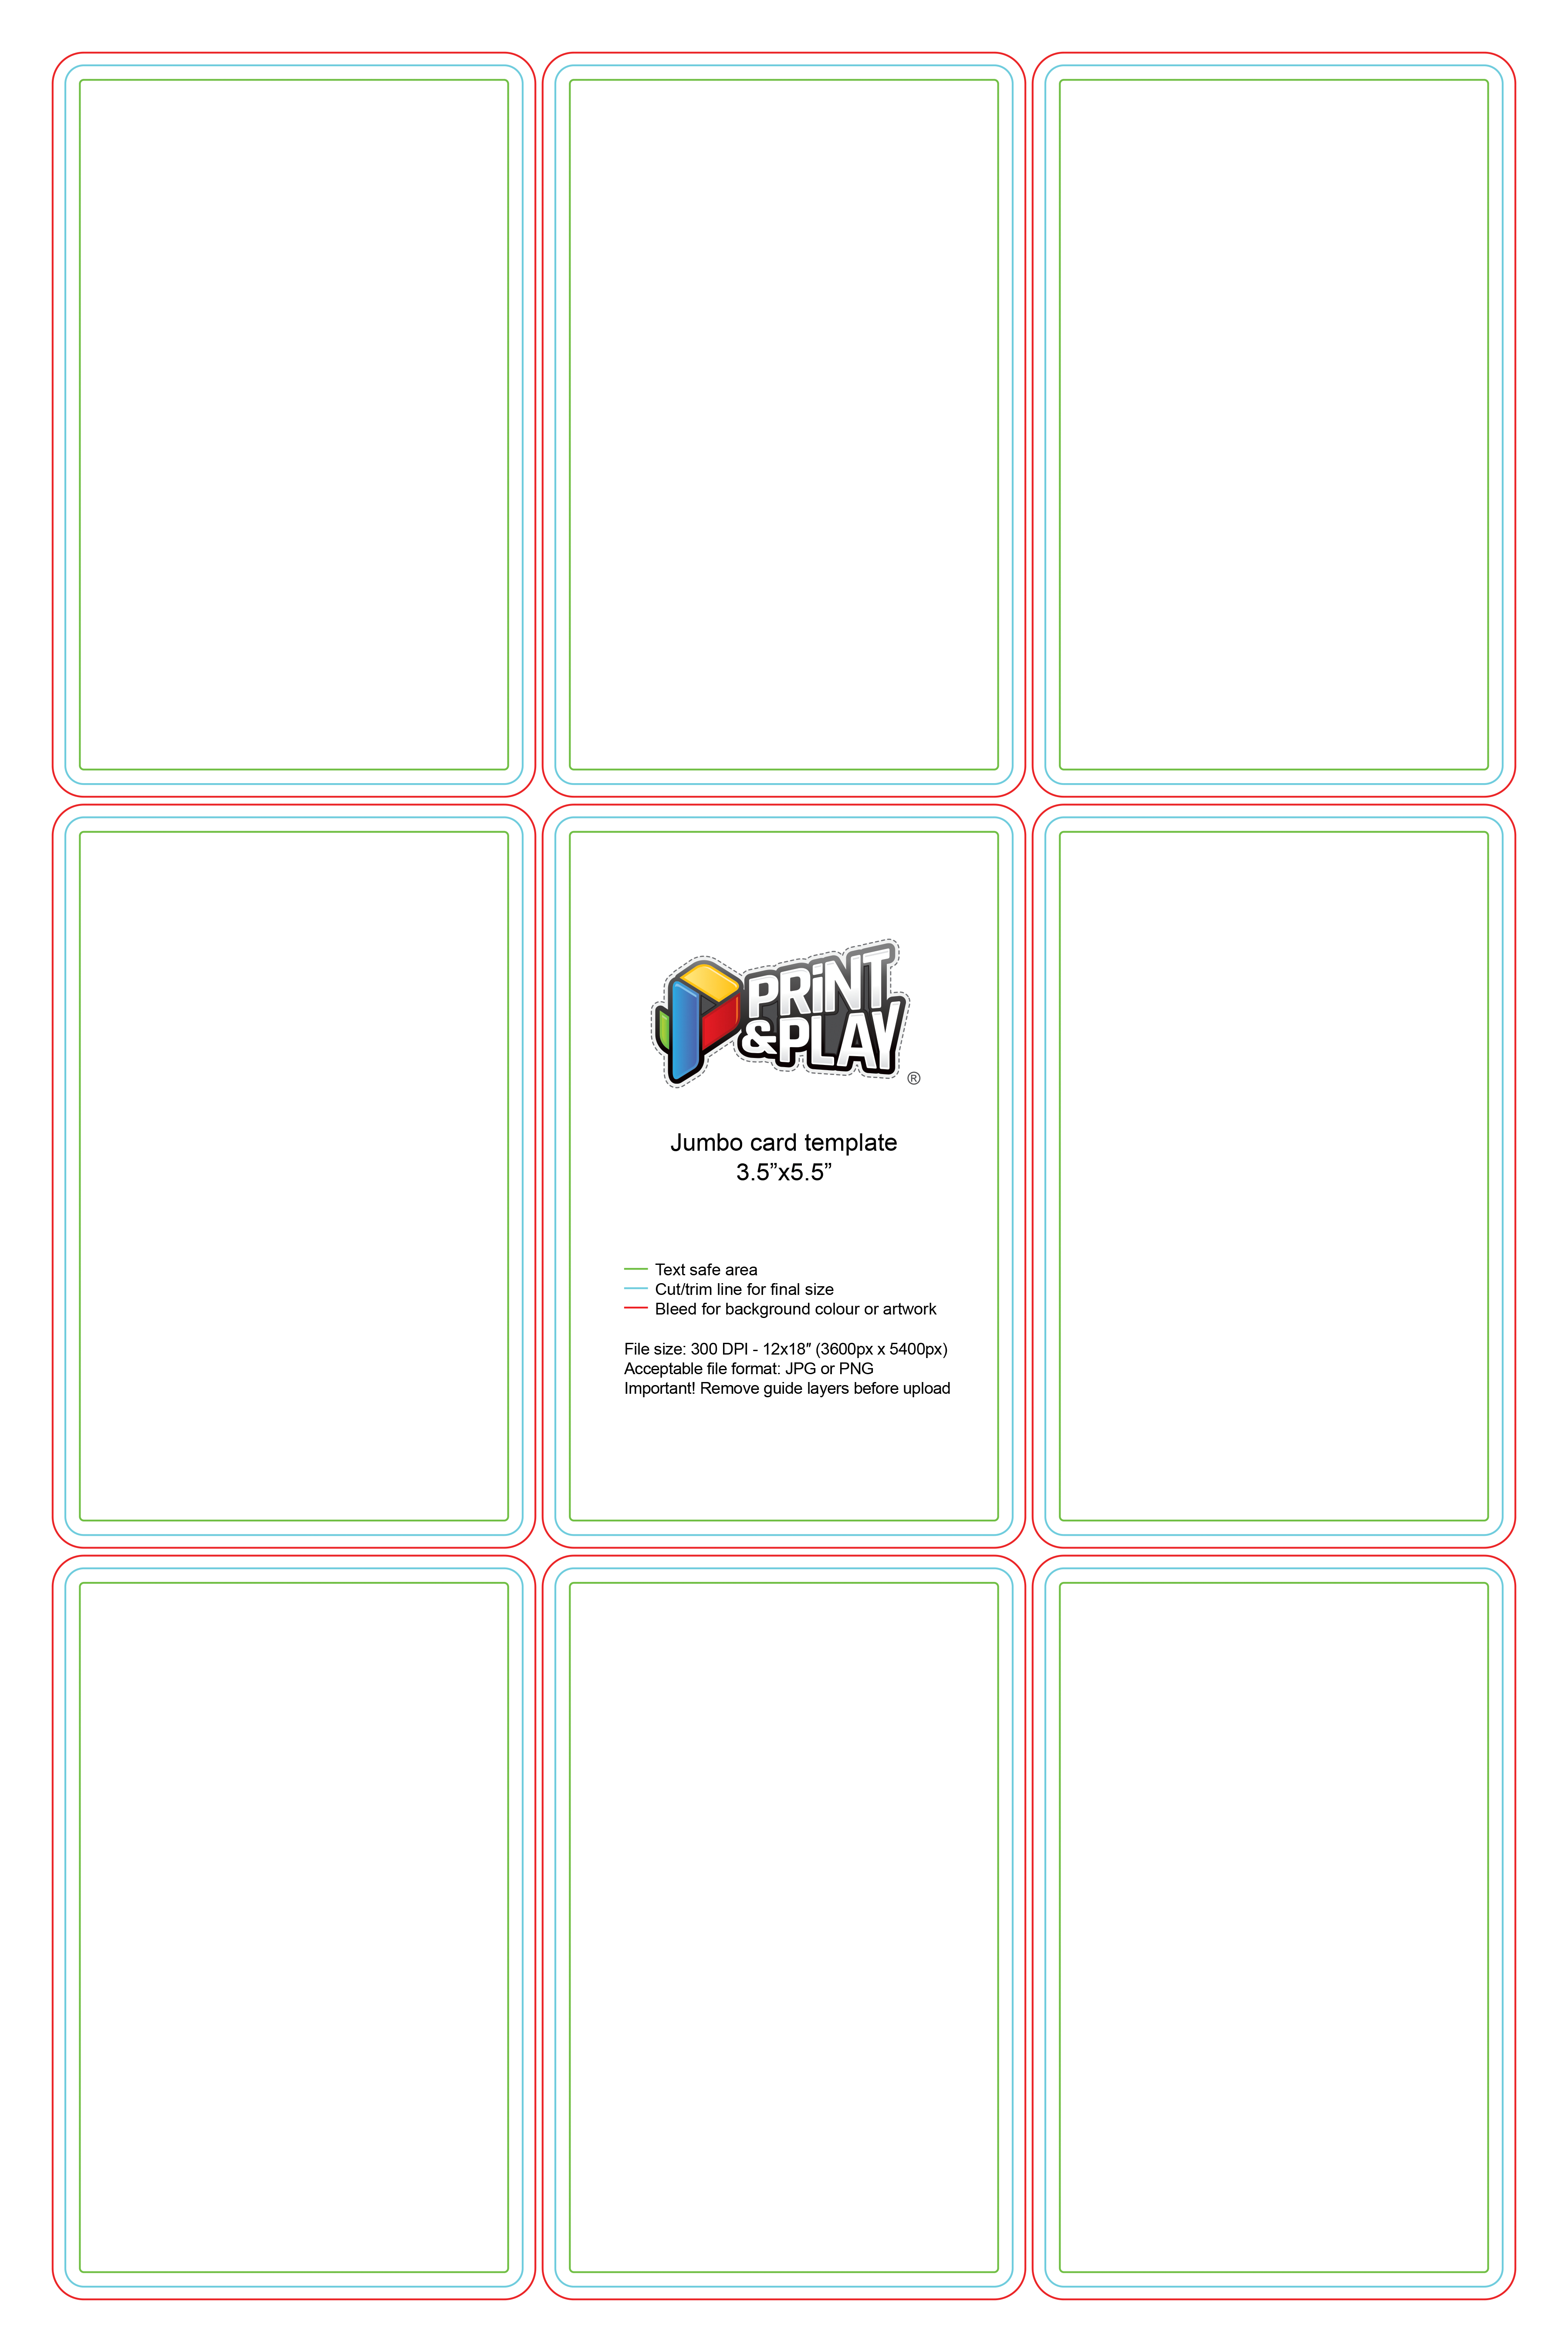 Playing Cards  Formatting  Templates  Print  Play Intended For Mtg Card Printing Template